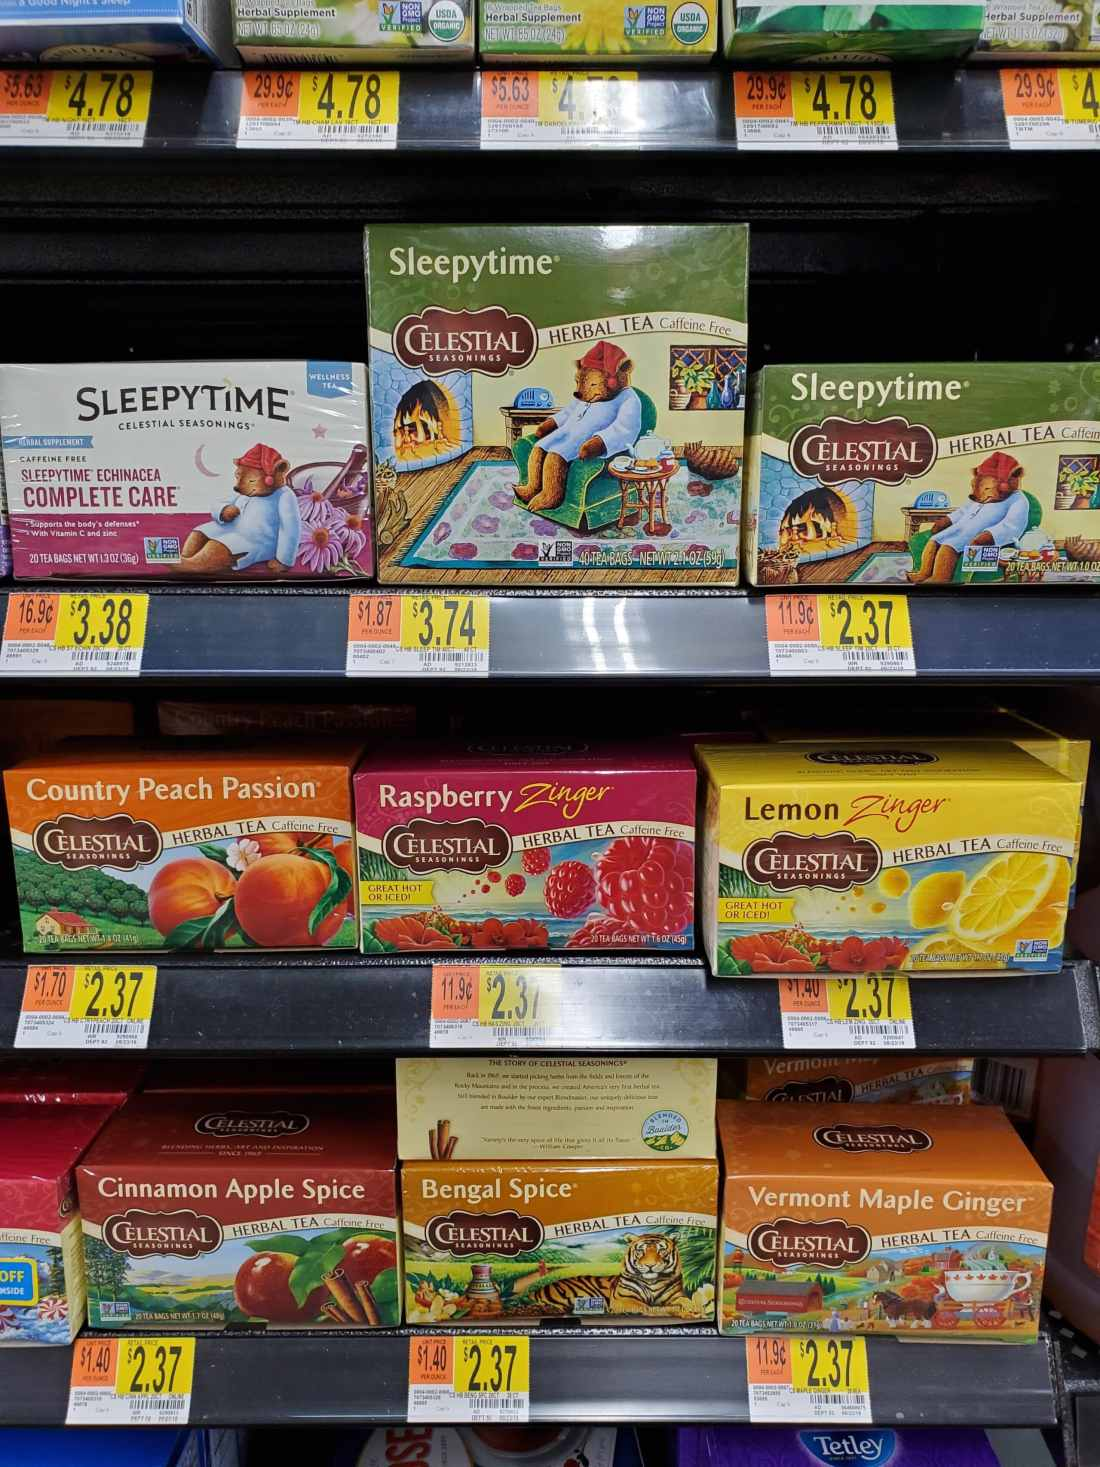 Celestial Seasonings Tea In Walmart. The Banana Berry Zinger Smoothie is the perfect spin on your regular smoothie routine. Its packed with fresh fruits and an herbal tea that is out of this world delicious. Read the full recipe on my blog at www.jayssweetnsourlife.com